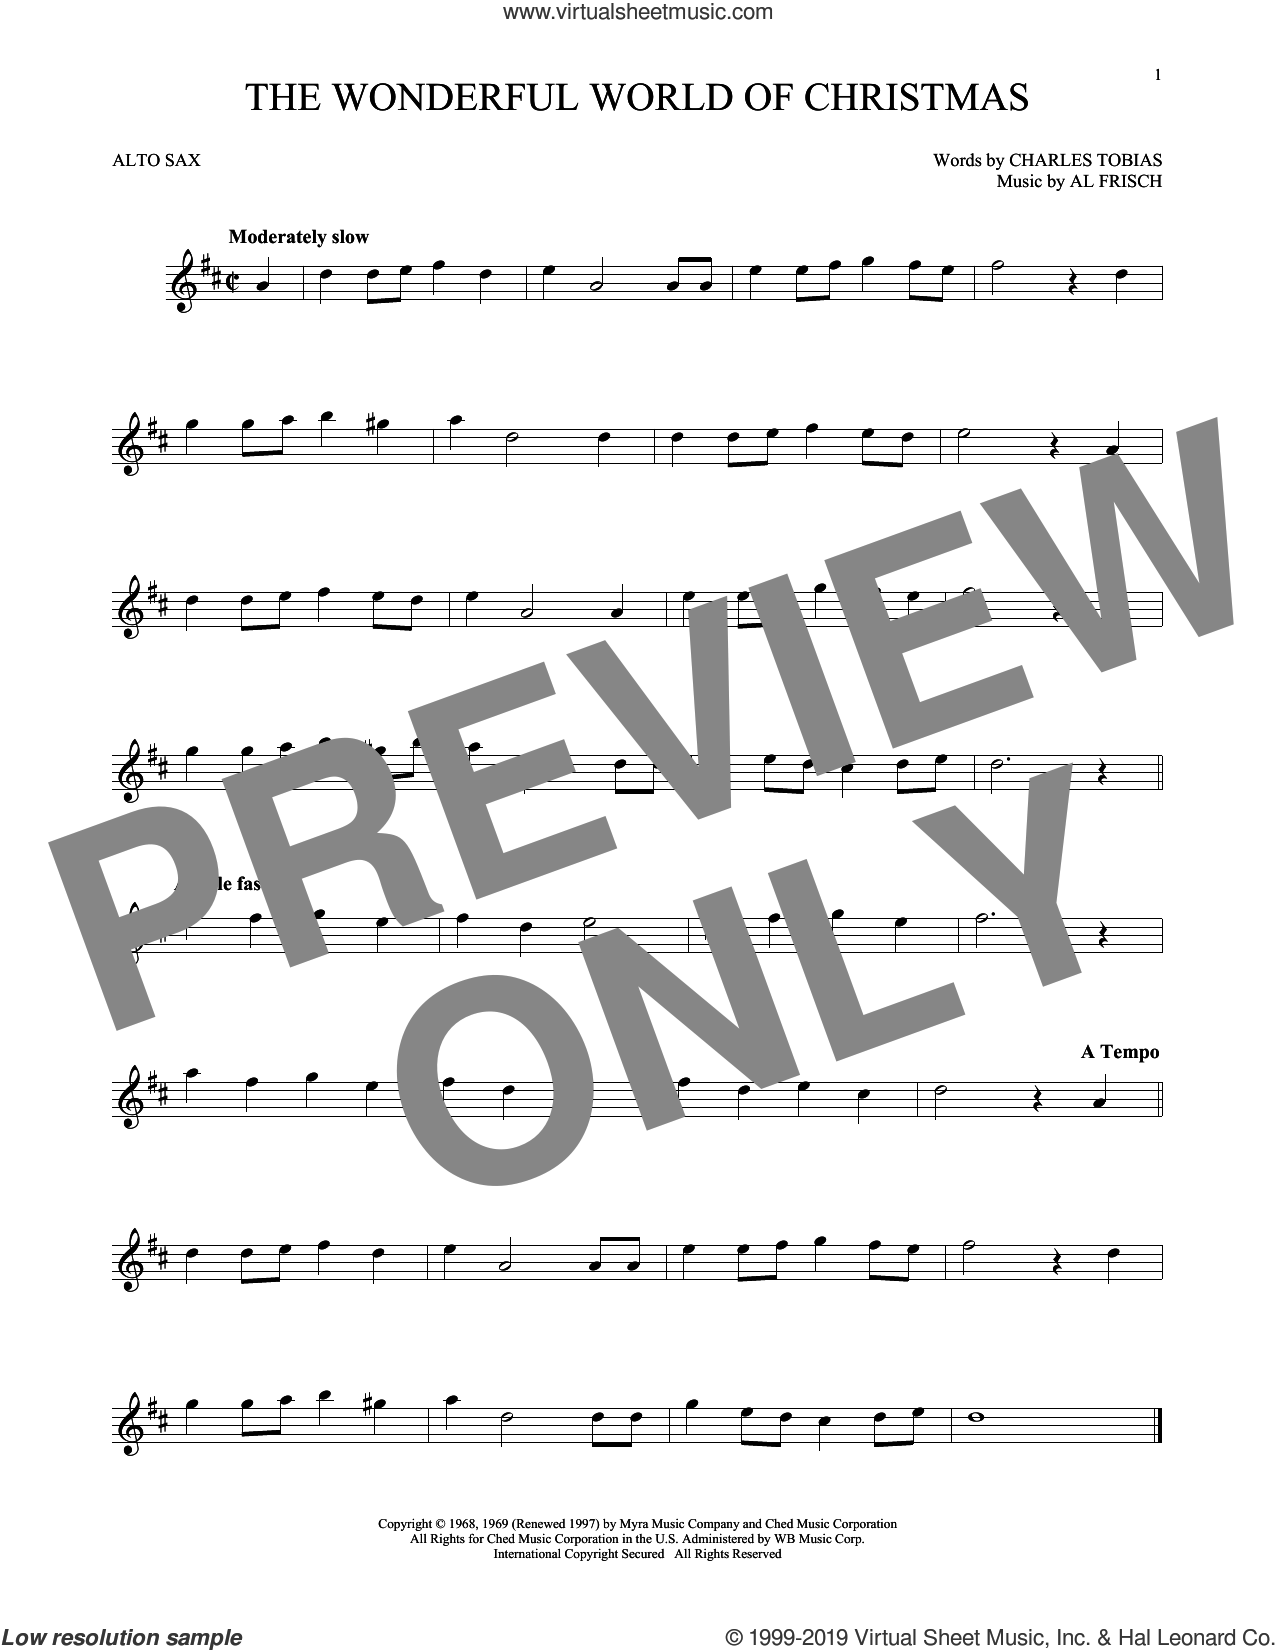 The Wonderful World Of Christmas sheet music for alto saxophone solo by Elvis Presley, Al Frisch and Charles Tobias, intermediate skill level